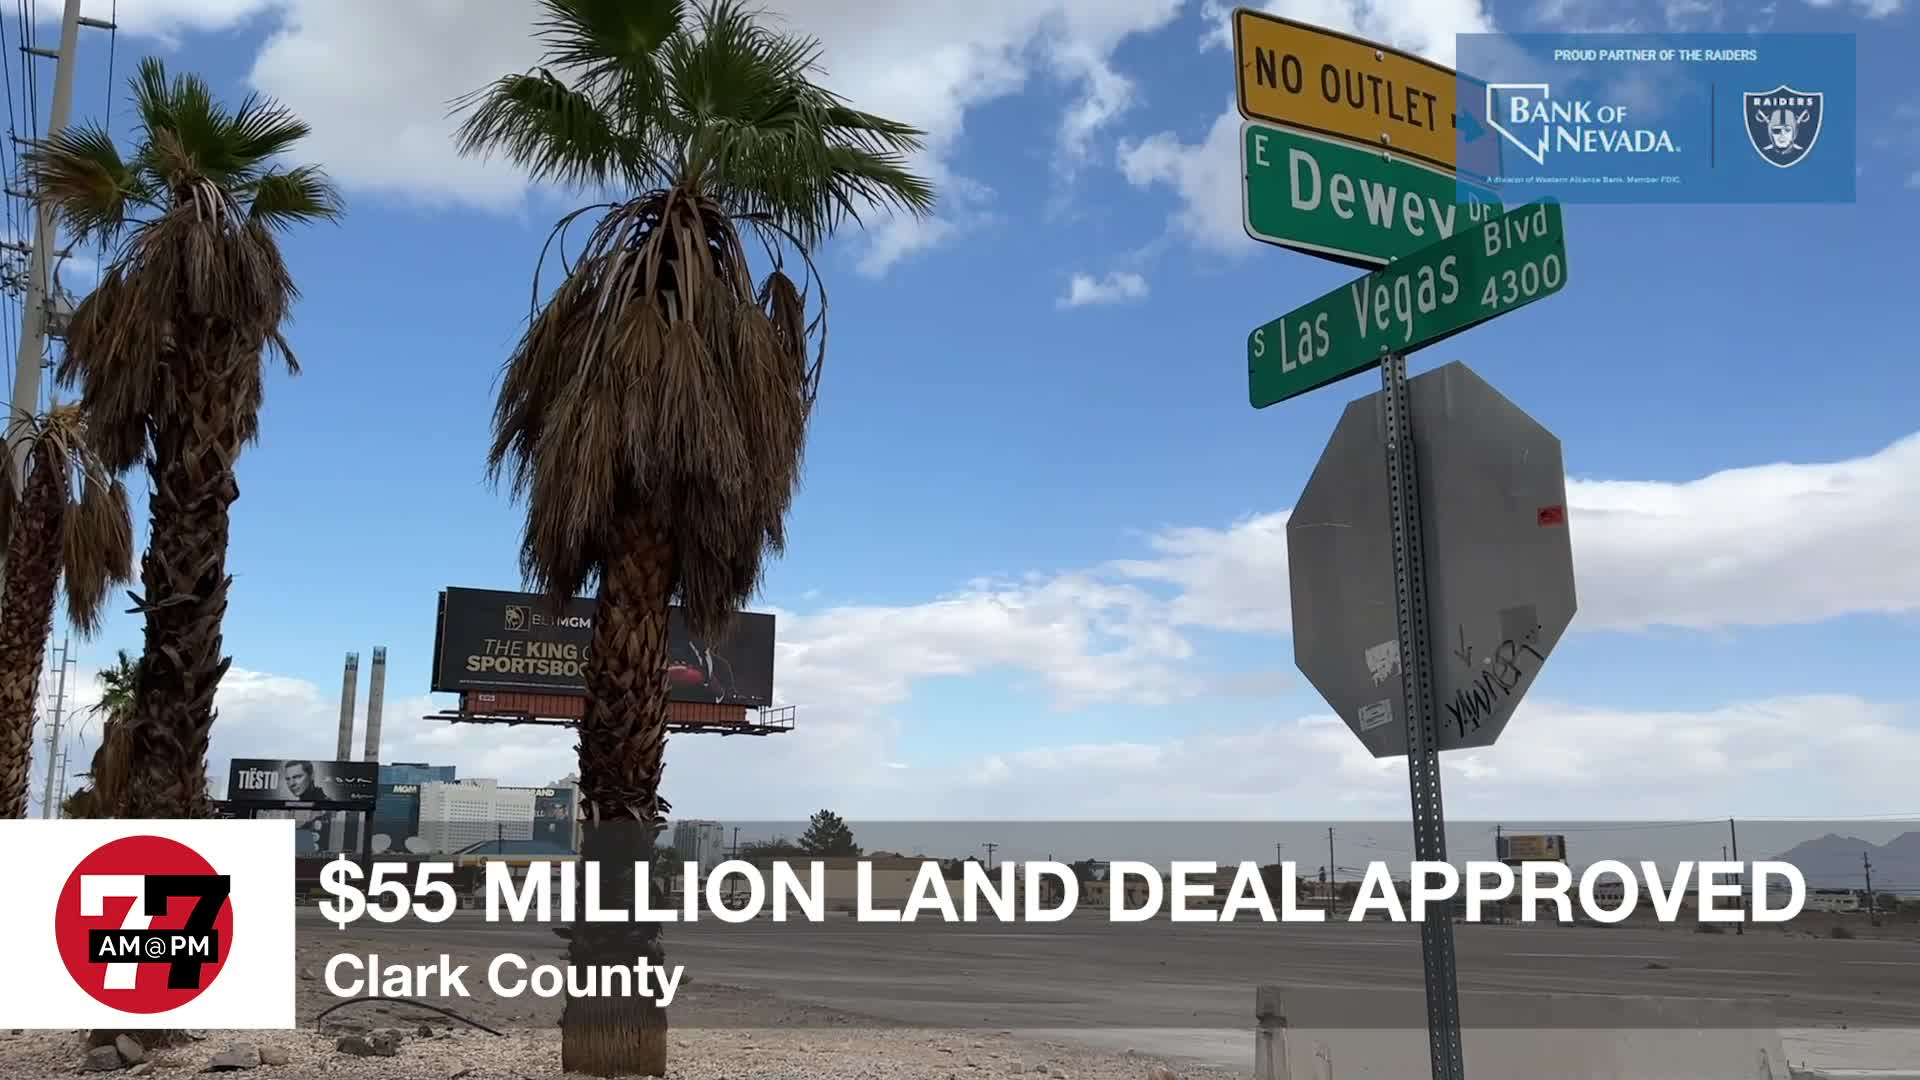 7@7PM $55M Land Deal Approved